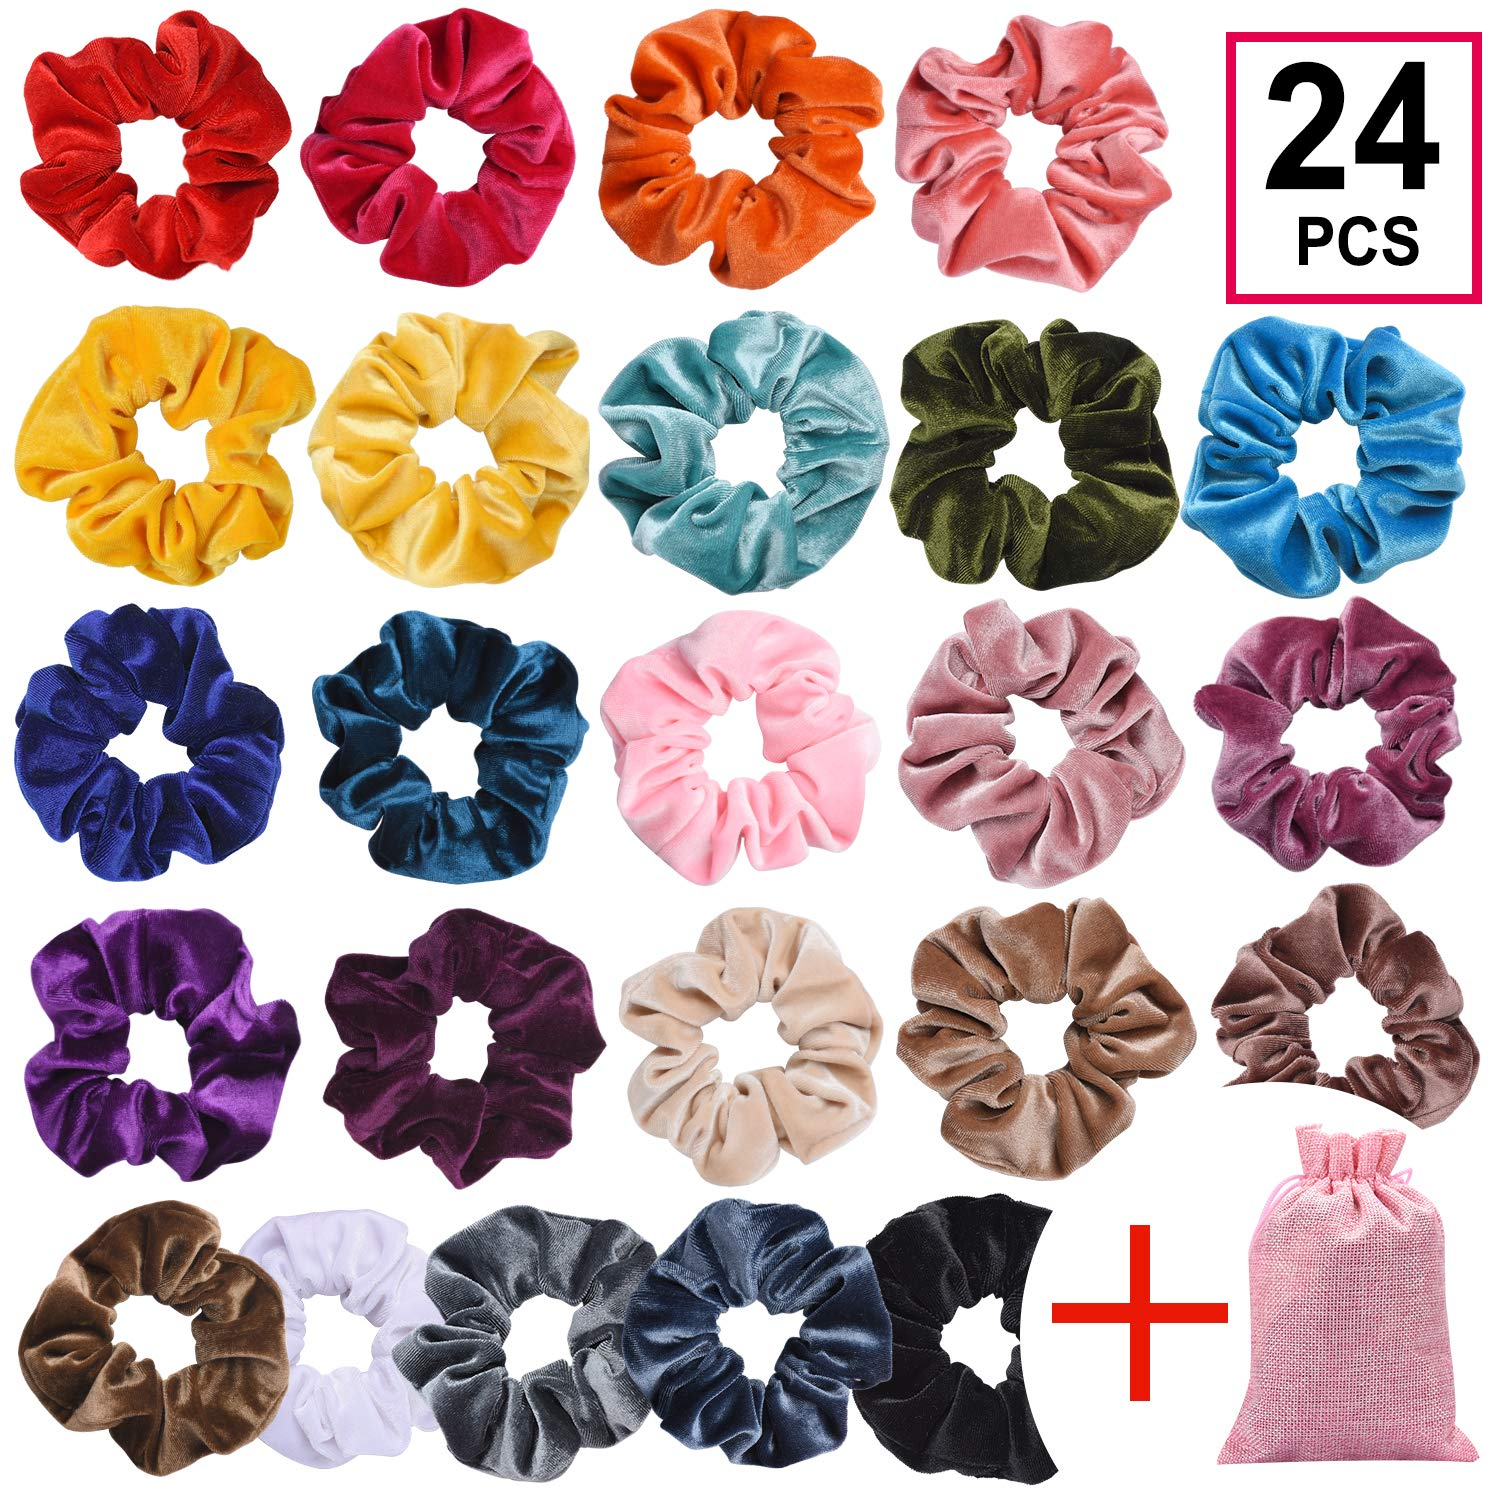 Premium Korean Velvet Hair Scrunchies Hair Bands Scrunchy Hair Ties Ropes Scrunchie for Women or Girls Hair Accessories with collection bags